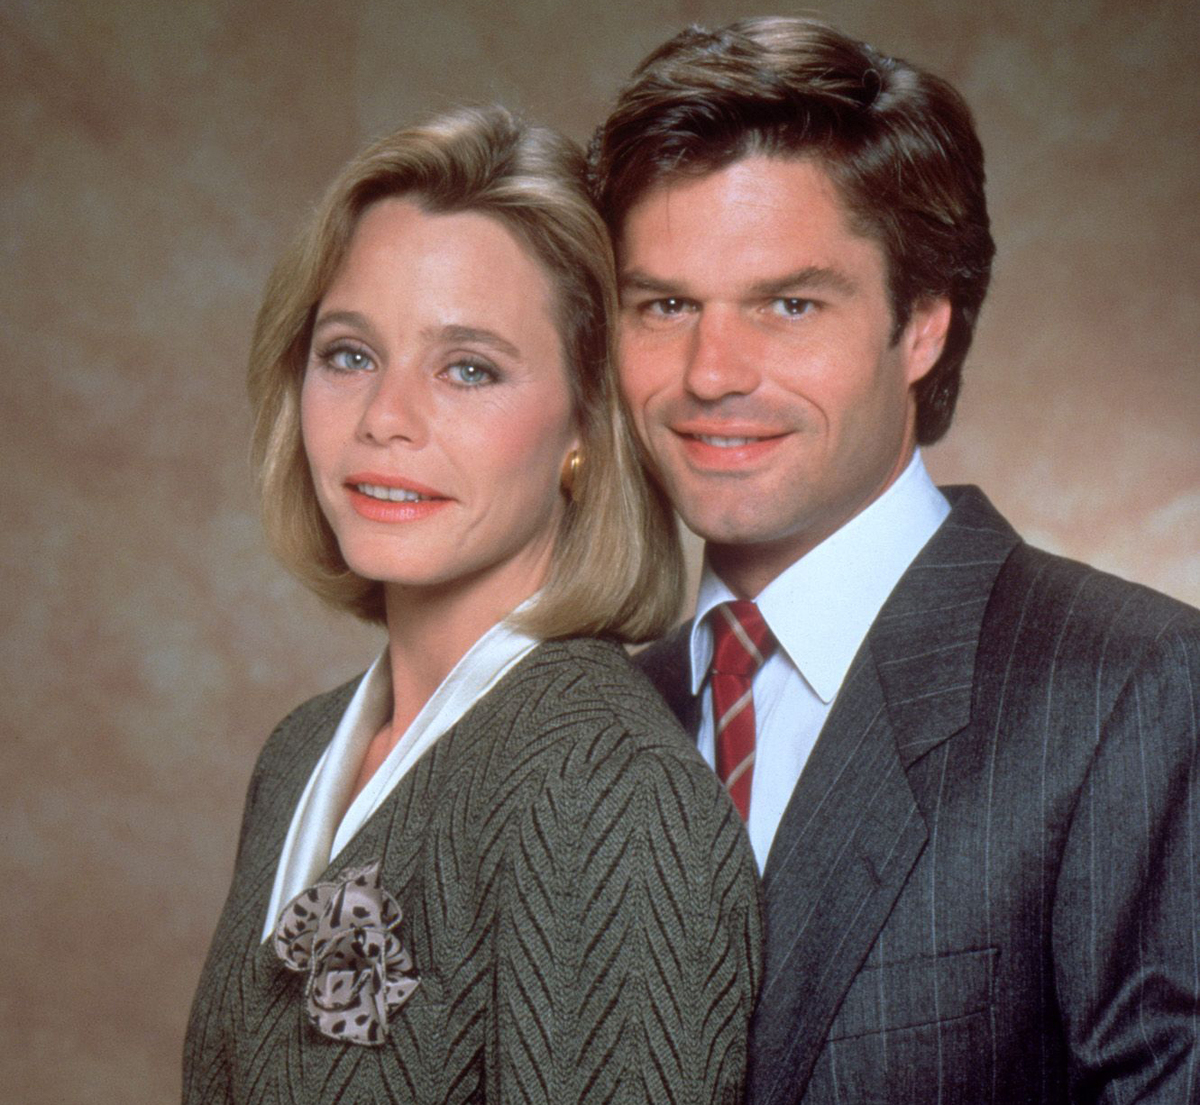 Harry Hamlin poses with Ssuan Dey for L.A. Law.